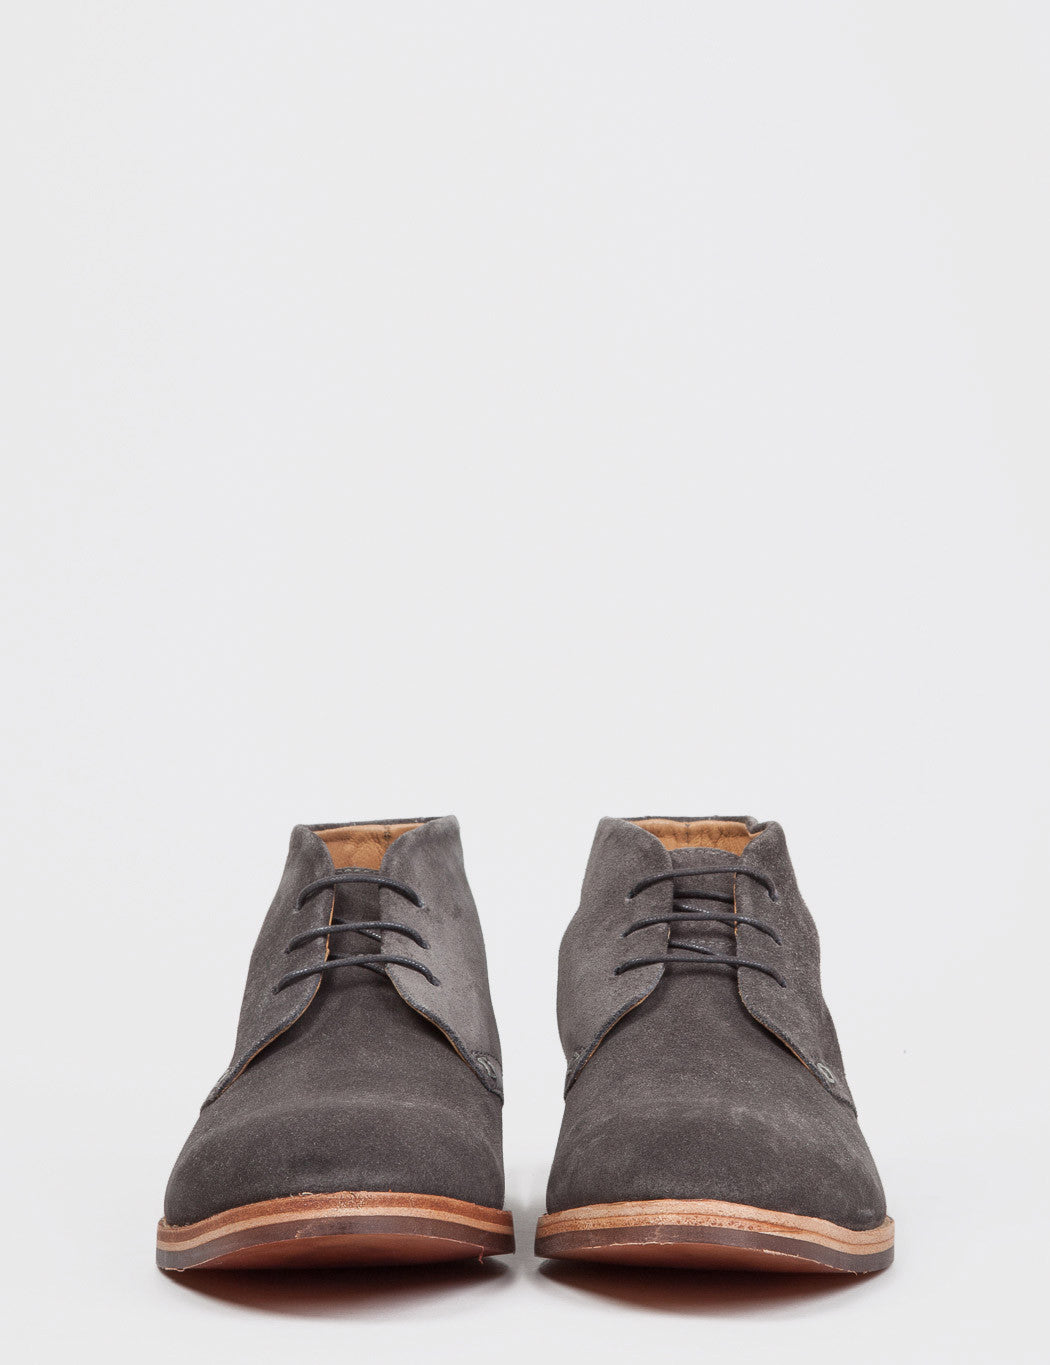 Hudson Houghton 3 Suede Boots - Grey